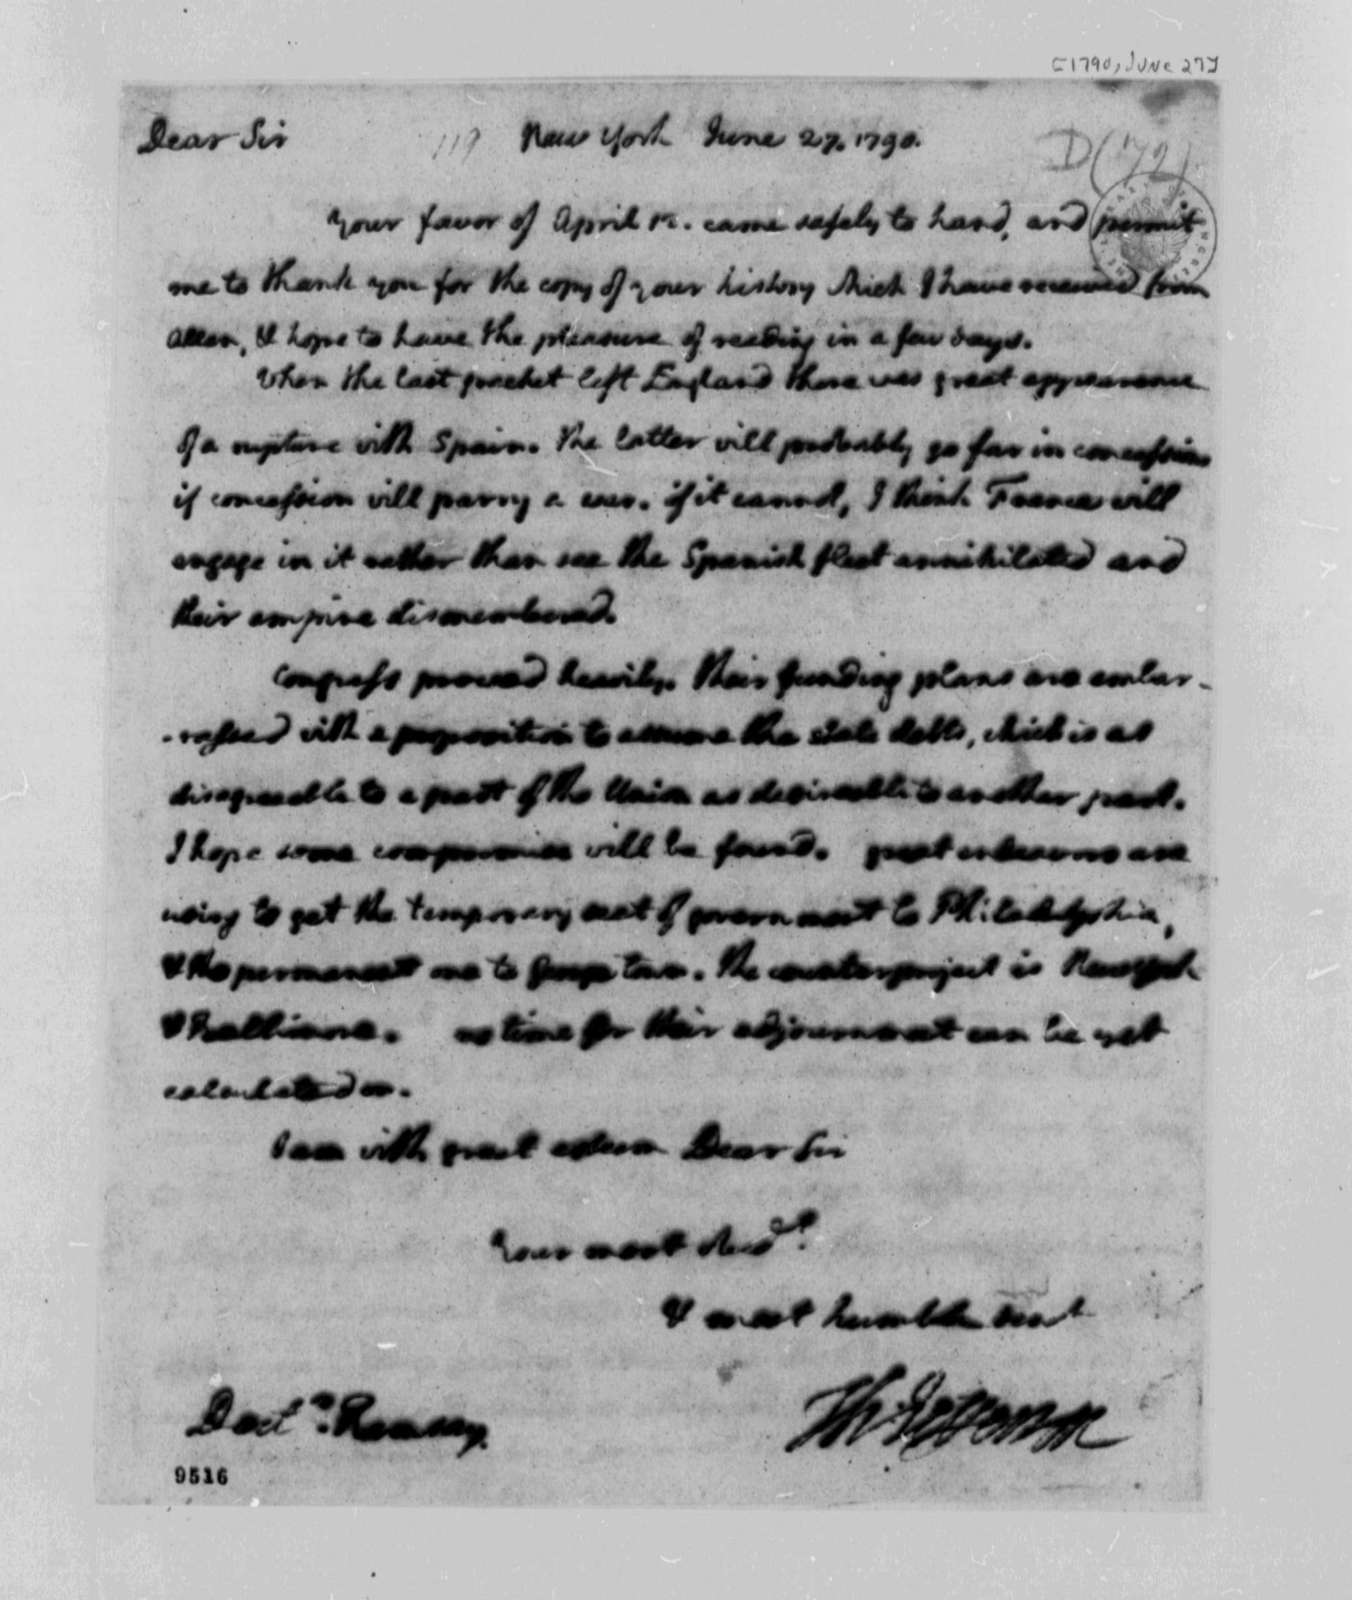 Thomas Jefferson to David Ramsay, June 27, 1790, with Copy; Partial Transcription Available